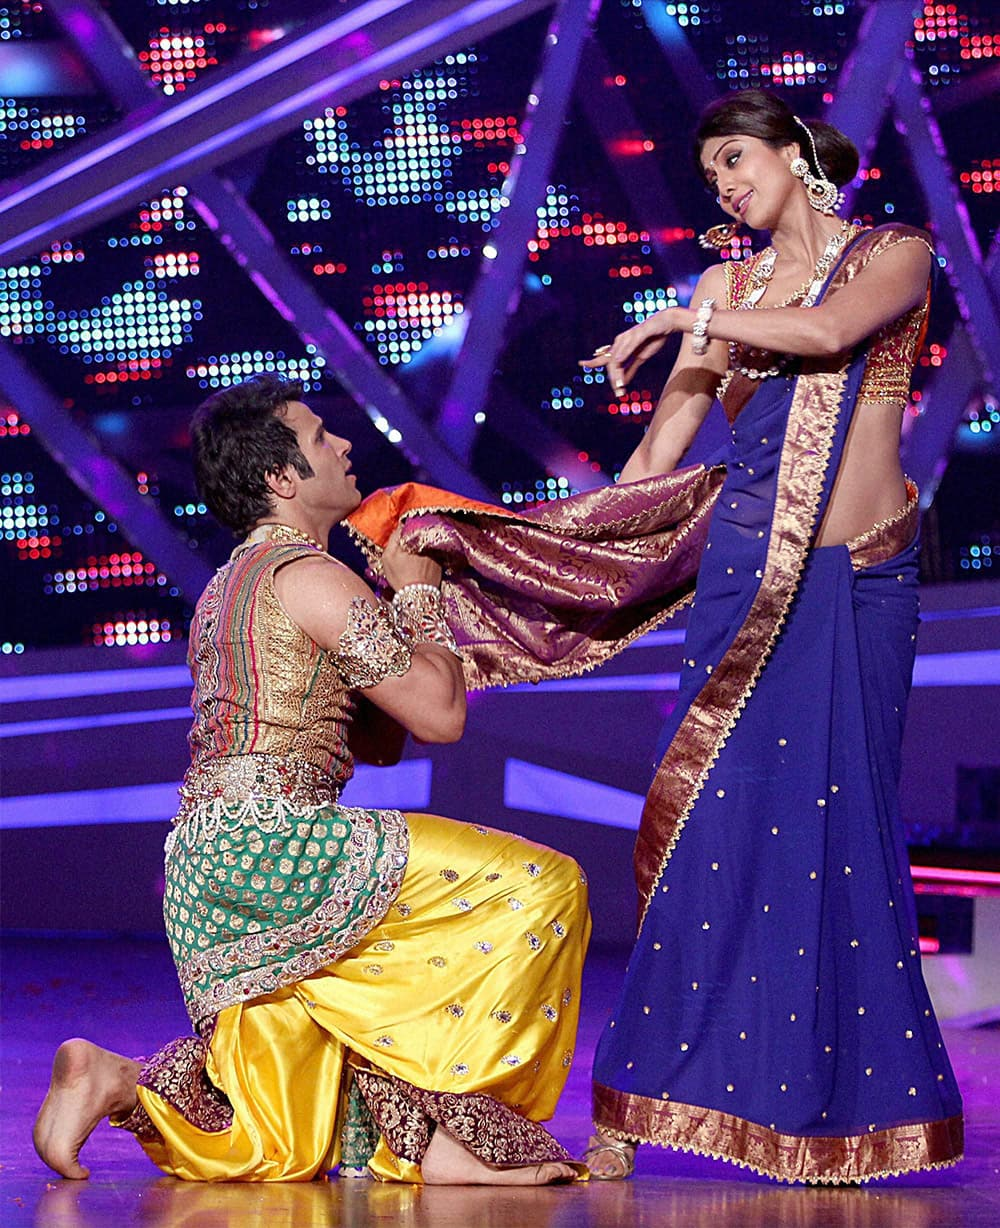 Bollywood actor Shilpa Shetty on the set of dance reality show in Mumbai.